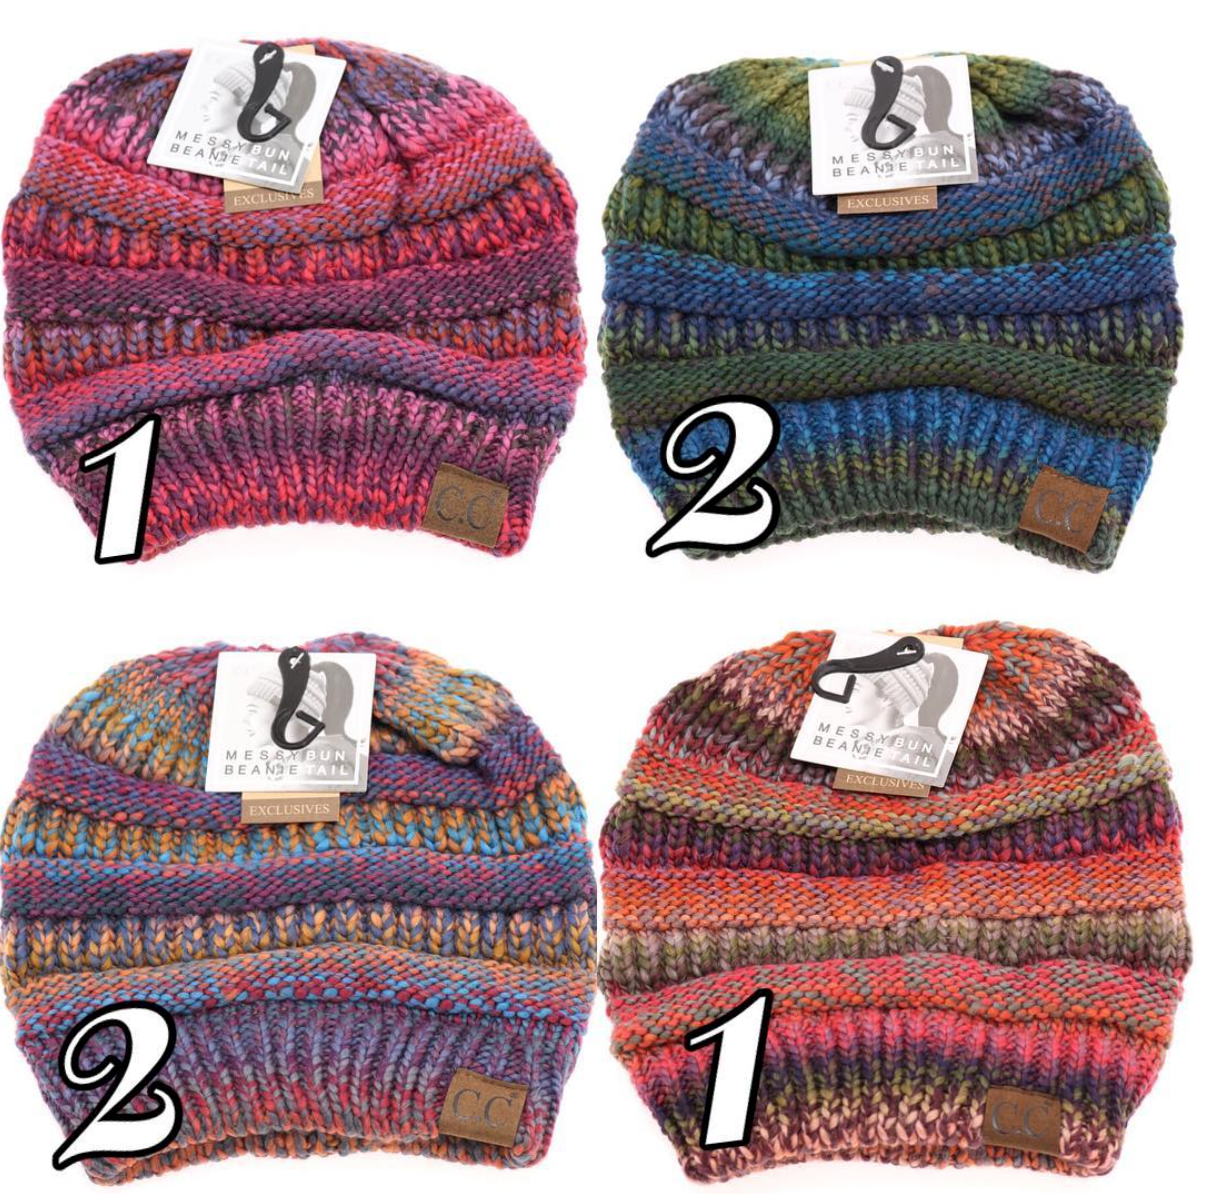 de1c3a01c7c Multicolor cable knit  ccbeanie messy bun high ponytail. Authentic.  Onesize.  sweetlystyledmarket  idahoboutique  onlineboutique  onlineshop   onlineshopping ...